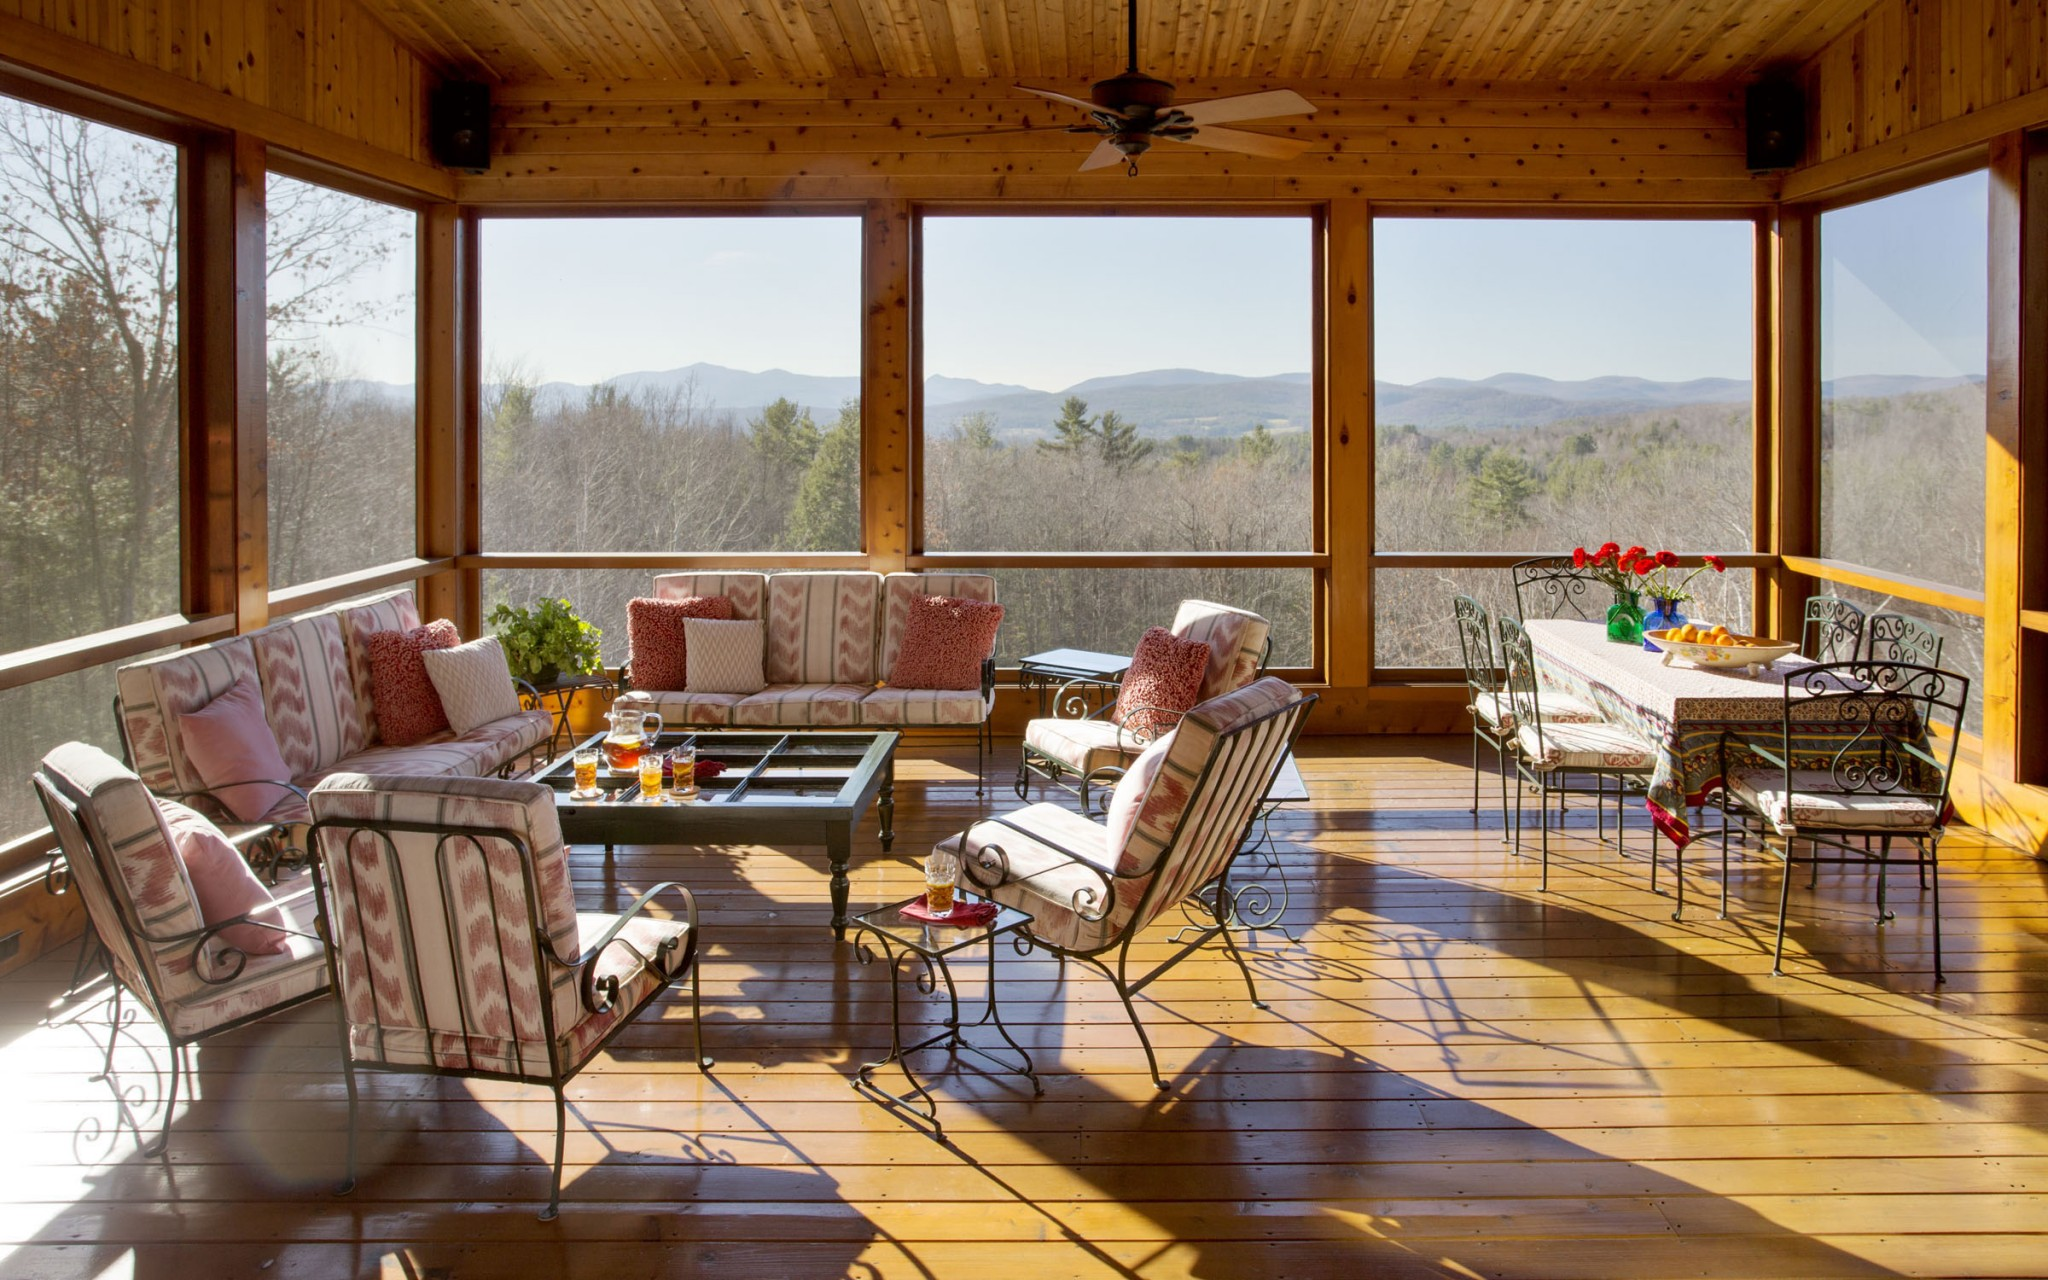 No Vermont farmhouse would be complete without a sun porch overlooking the Green Mountains. Interior design by Boston Interior Designer Elizabeth Swartz Interiors.